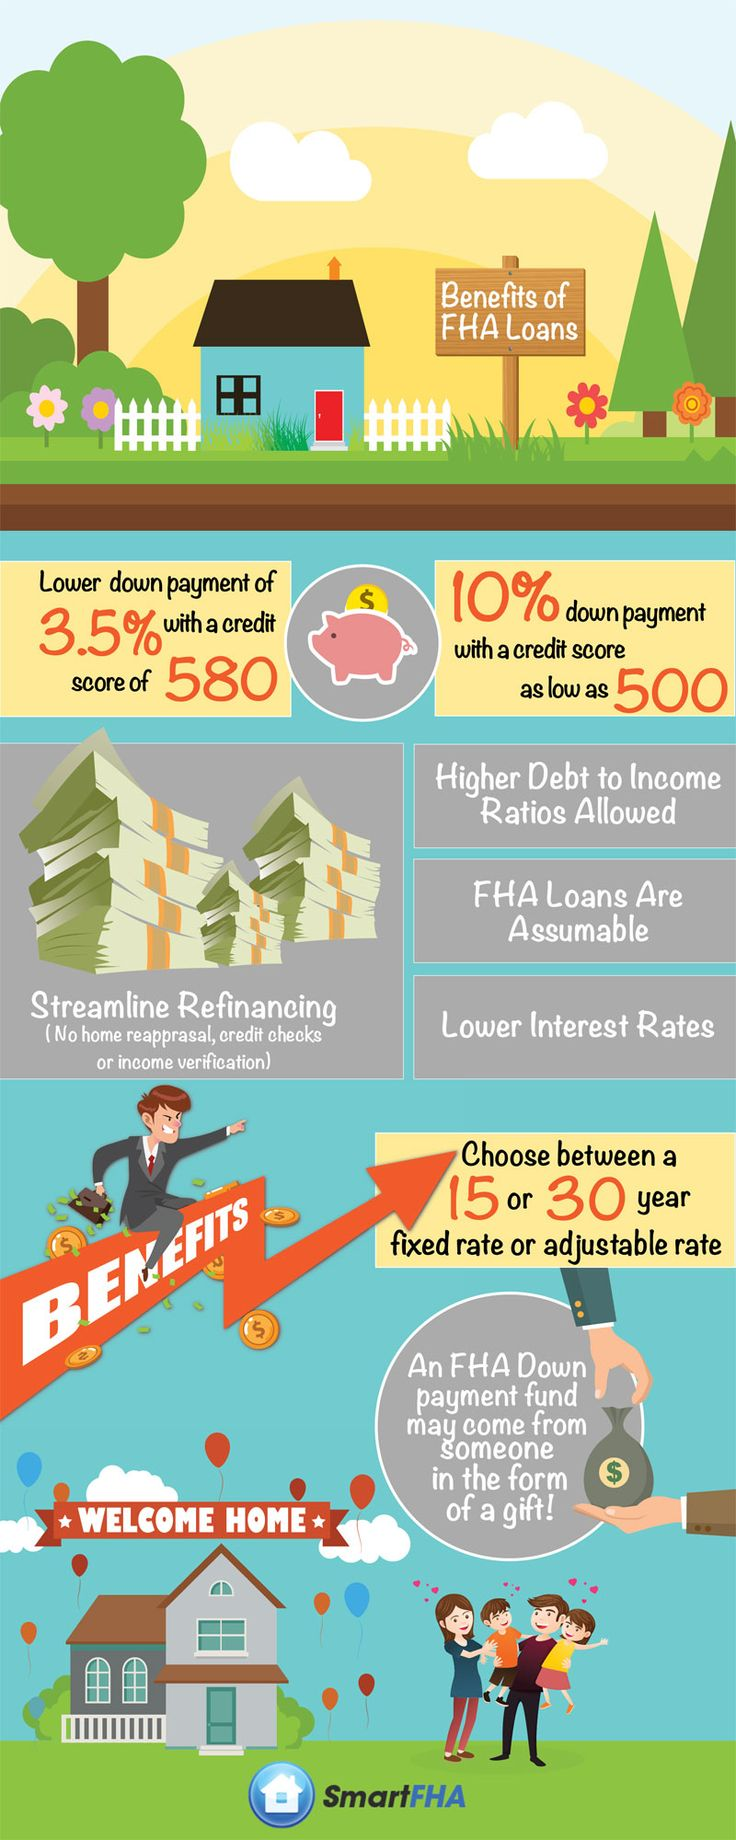 Worksheets Fha Streamline Refinance Calculator Worksheet best 25 fha loan ideas on pinterest home buying process house benefits of loans